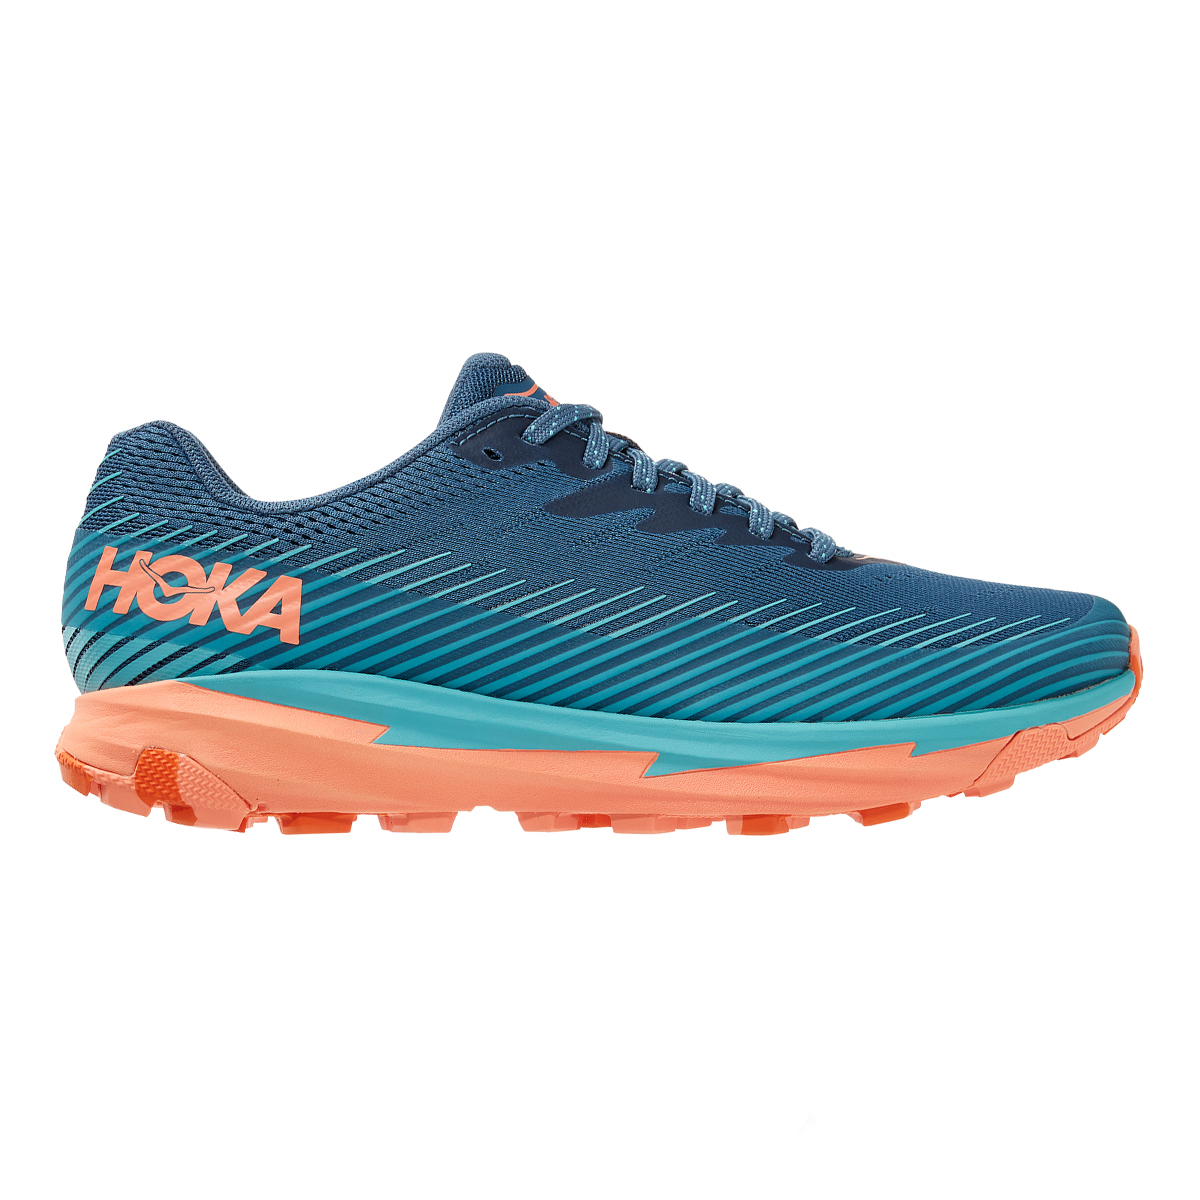 Women's Hoka One One Torrent 2 Trail Running Shoe - Color: Real Teal / Cantaloupe - Size: 5 - Width: Regular, Real Teal / Cantaloupe, large, image 1